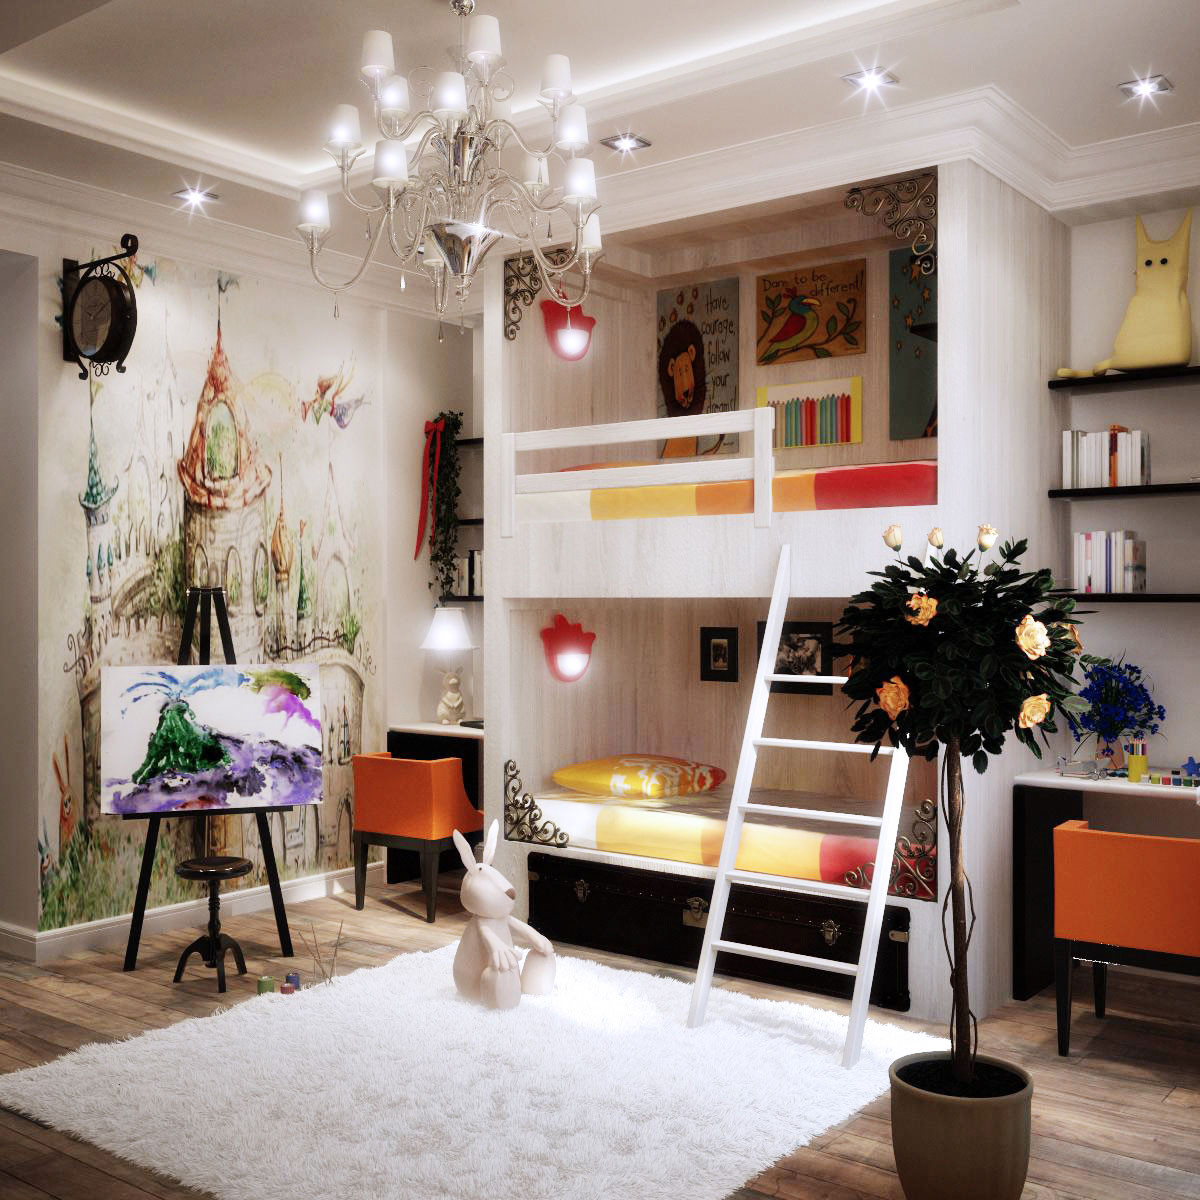 Best ideas about Kids Bedroom Ideas . Save or Pin Colorful Kids Rooms Now.